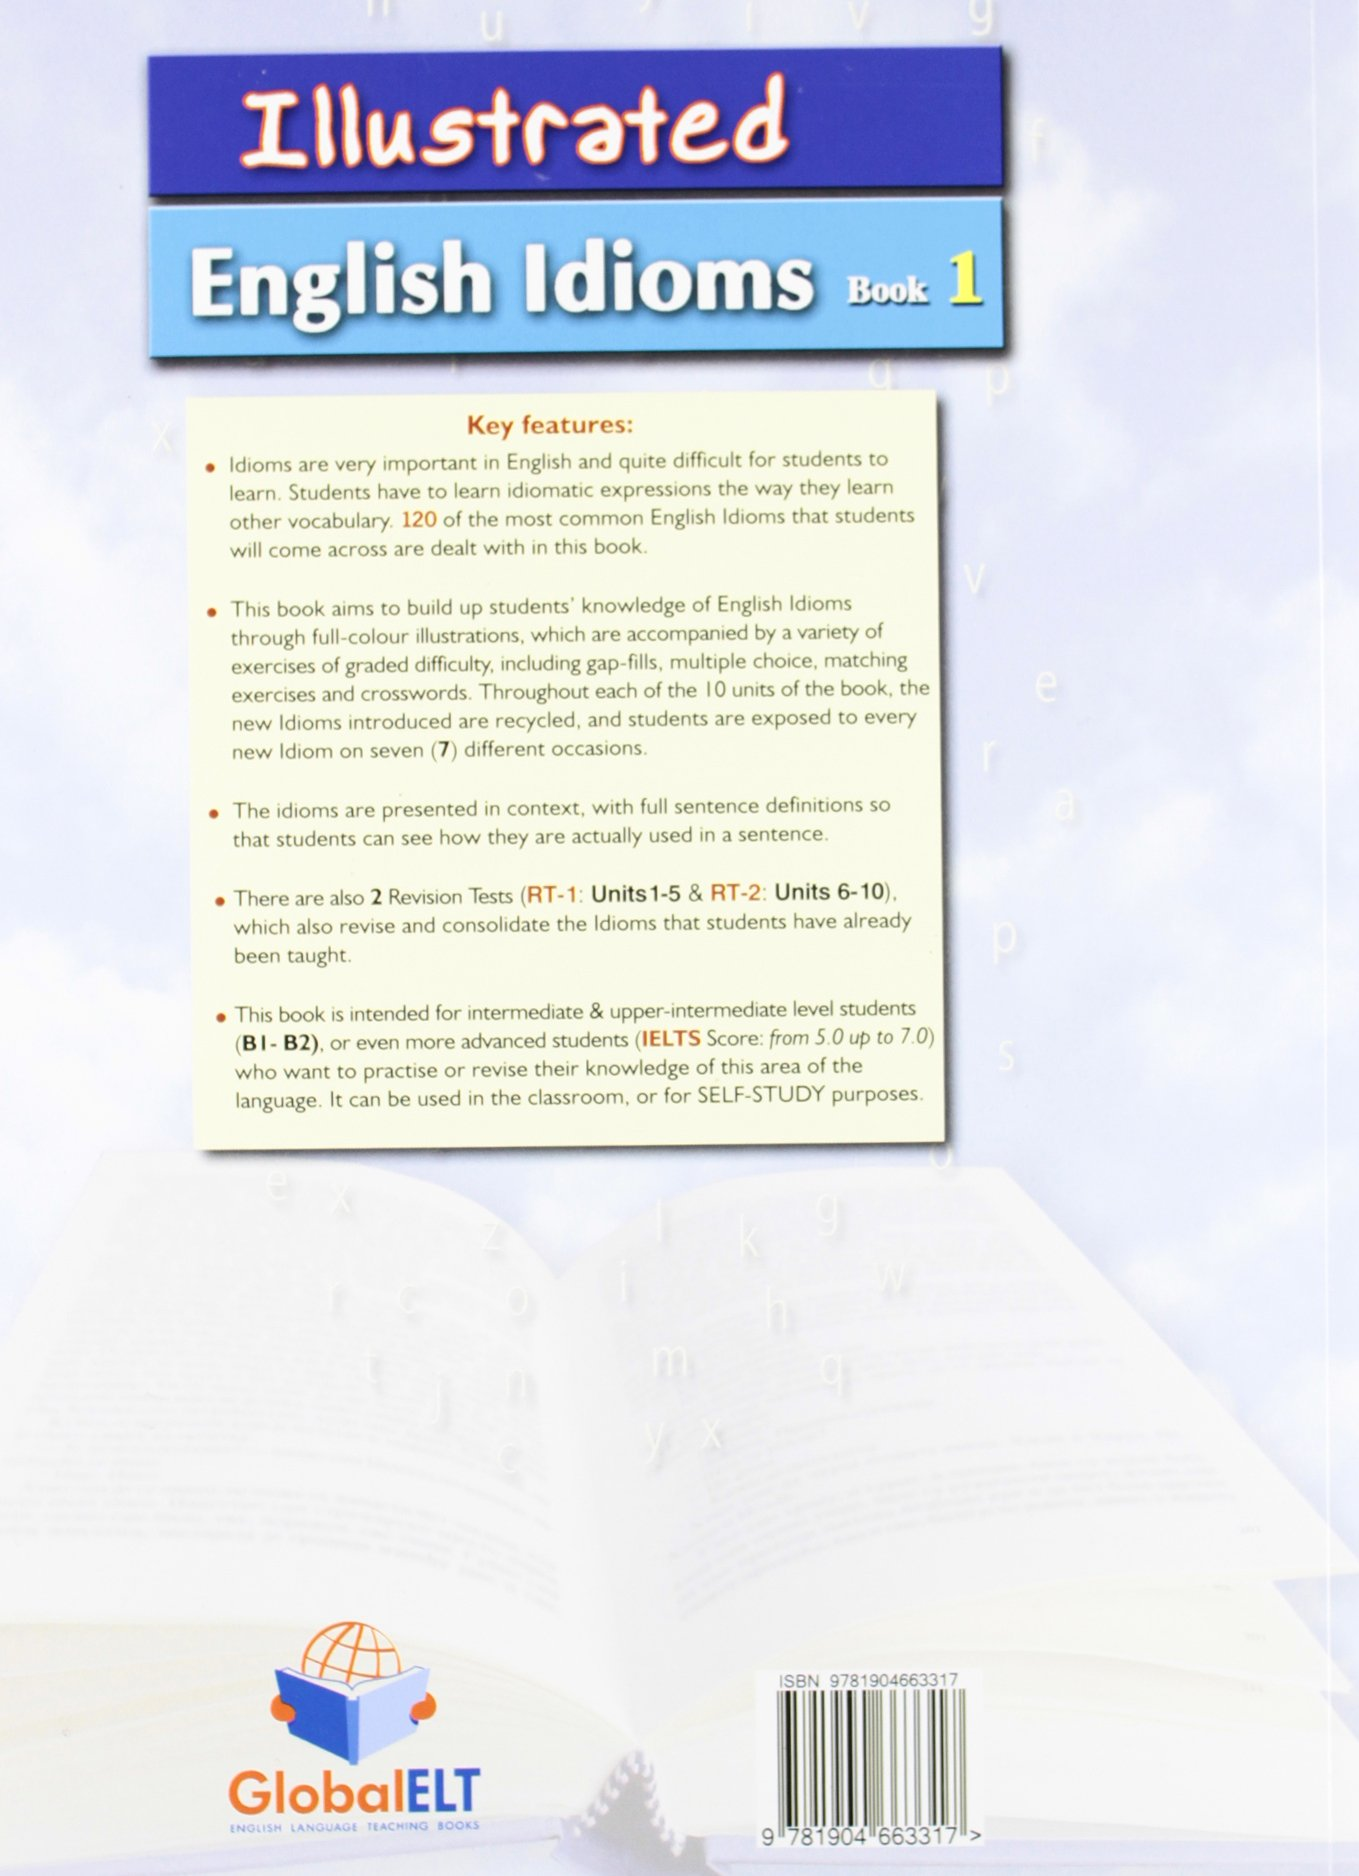 Illustrated Idioms B1 & B2 - Book 1 - Student's Book: Amazon co uk